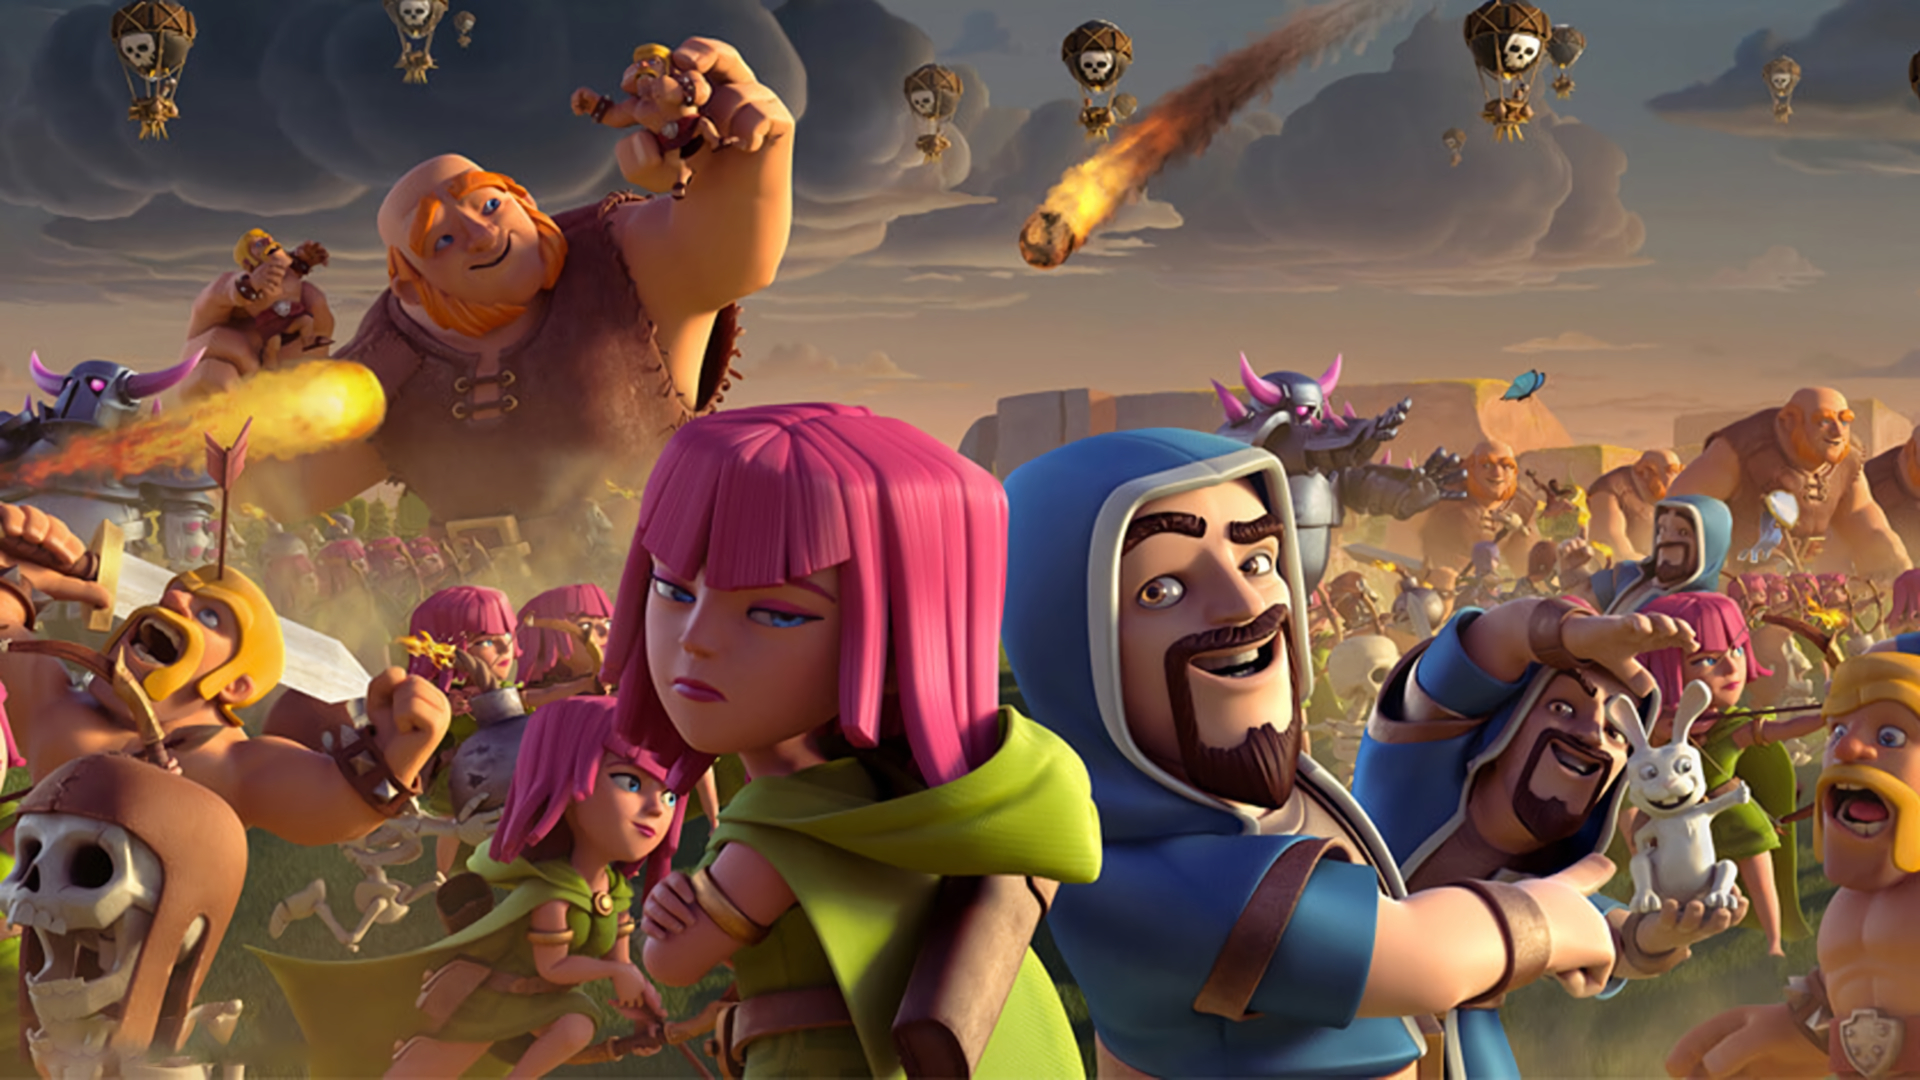 57 clash of clans hd wallpapers | background images - wallpaper abyss